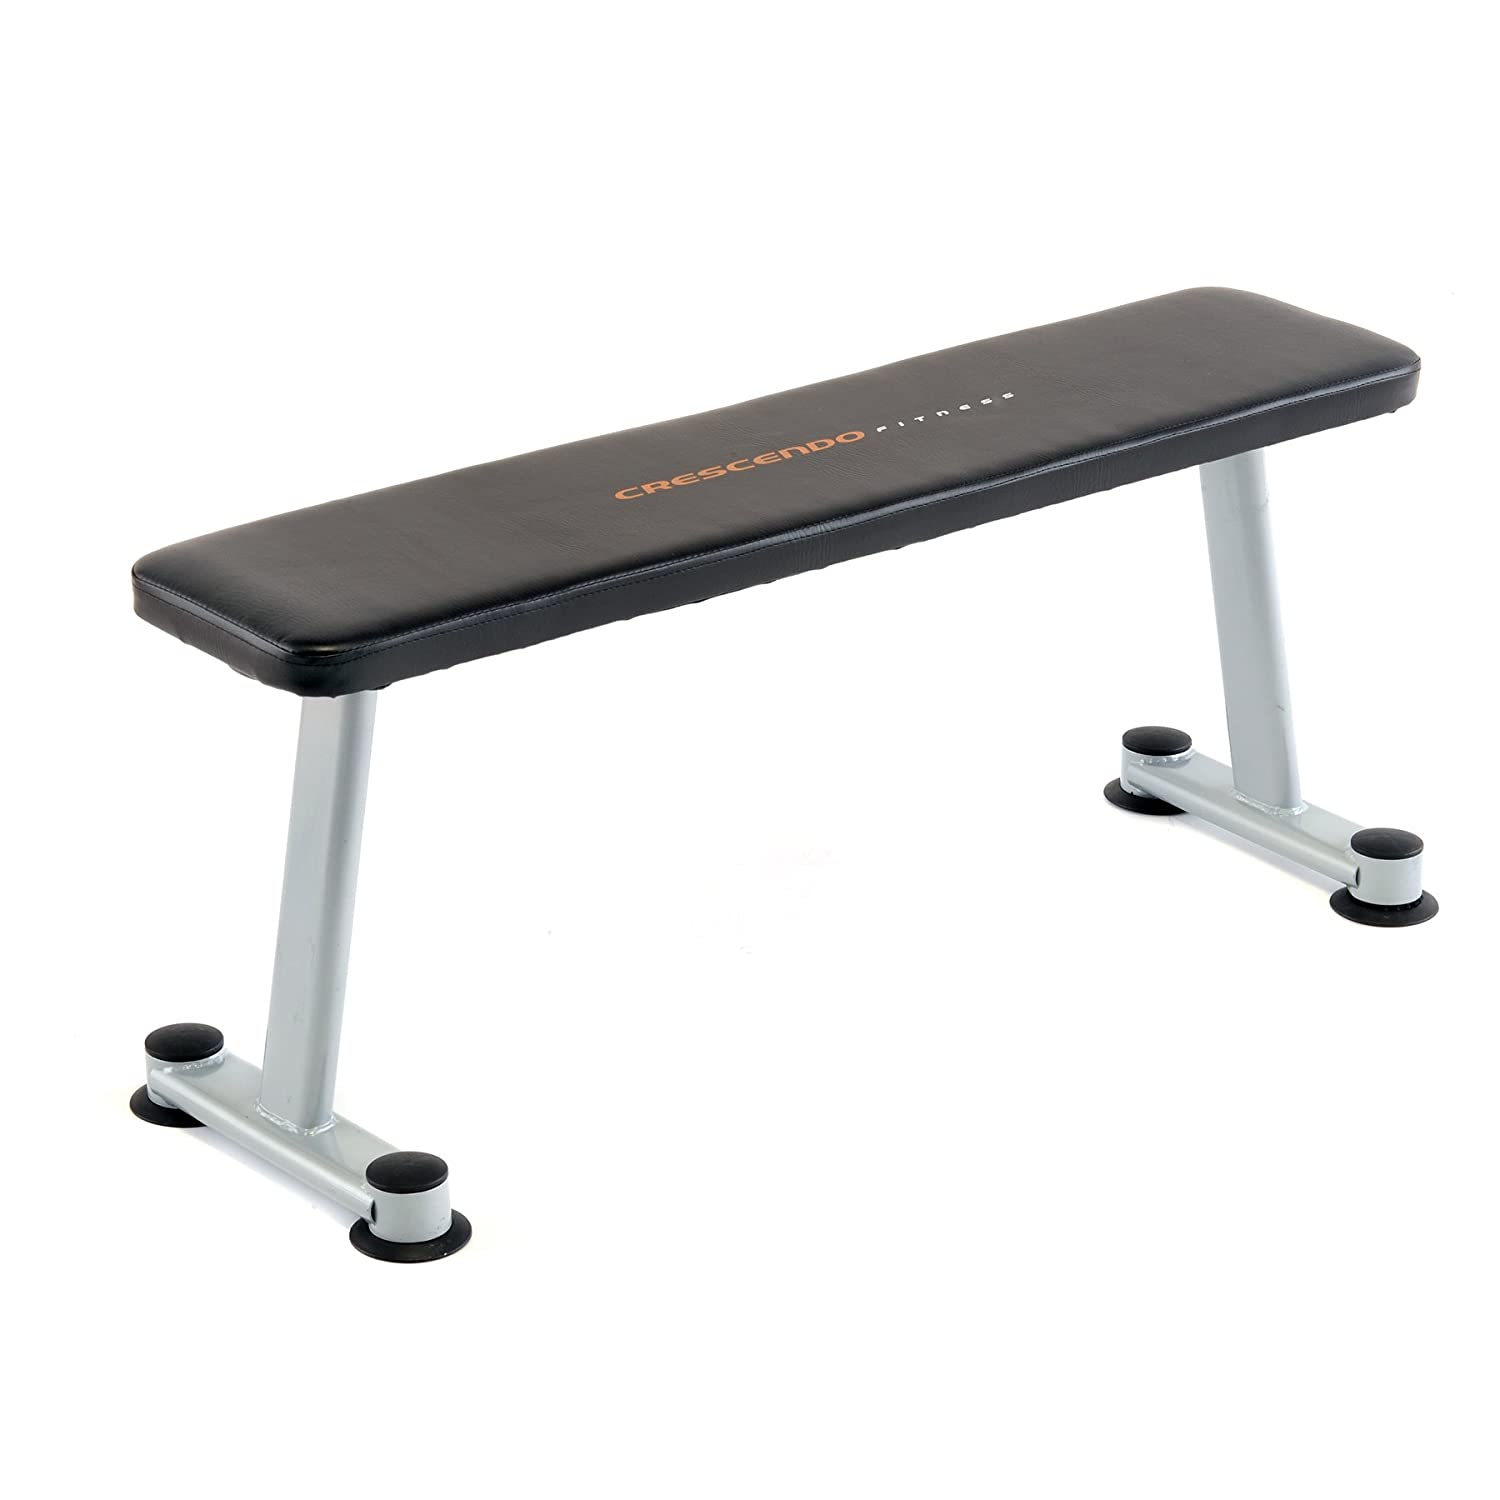 Crescendo Fitness 80242 Flat Bench